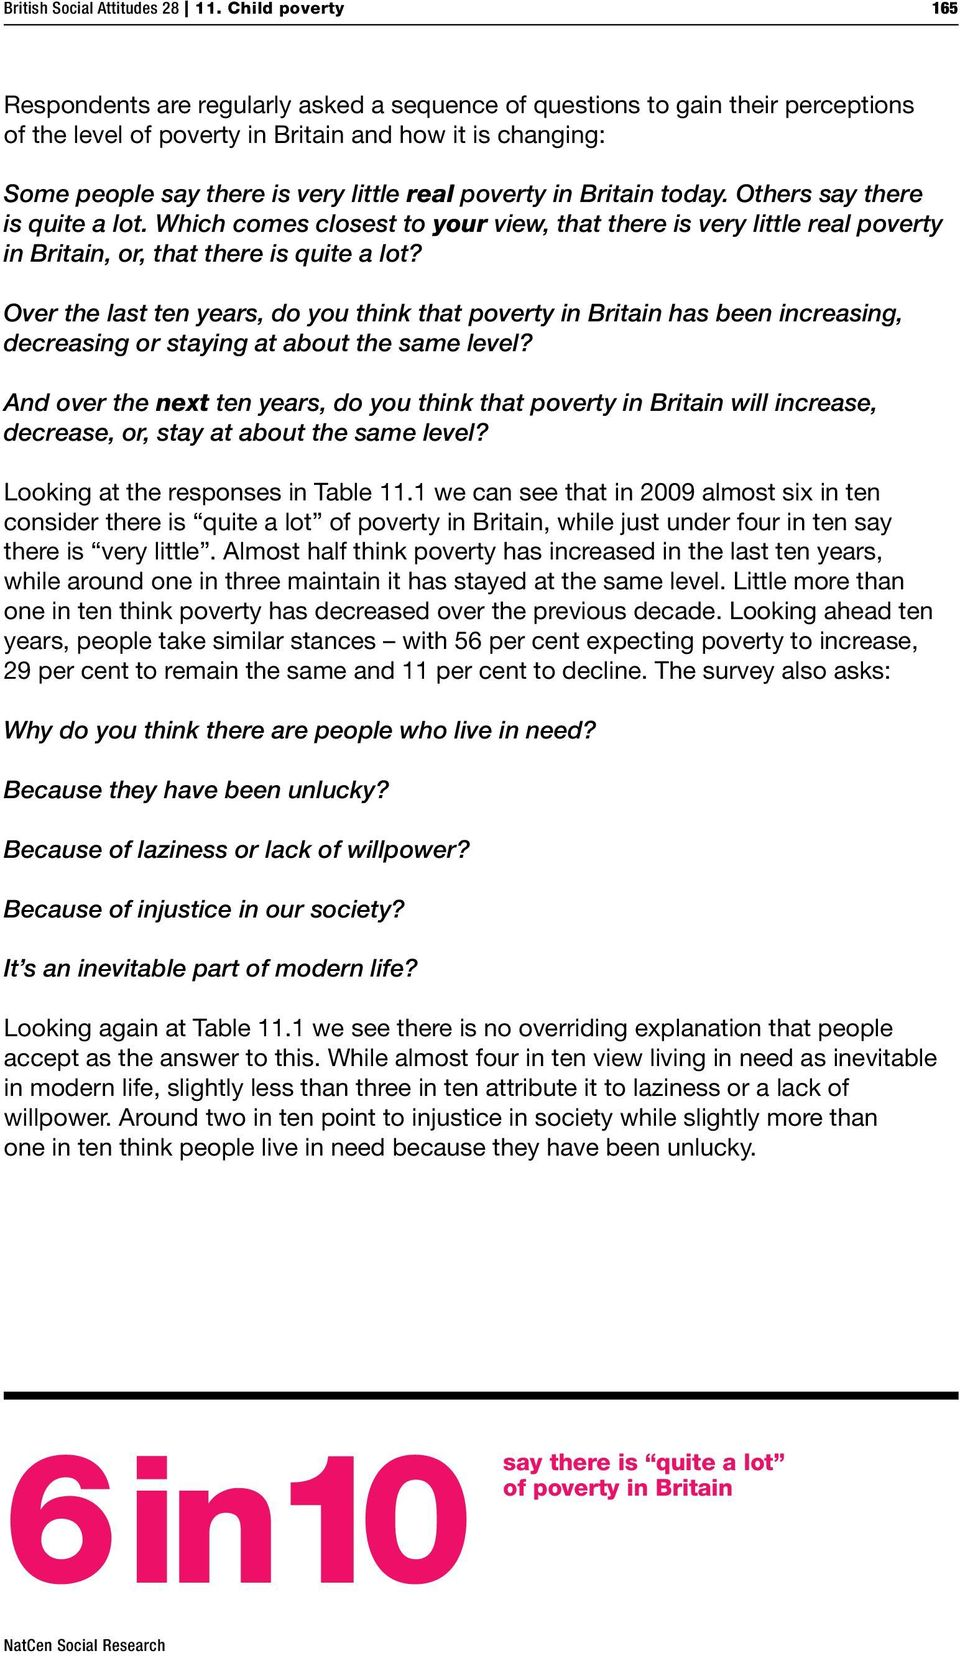 real poverty in Britain today. Others say there is quite a lot. Which comes closest to your view, that there is very little real poverty in Britain, or, that there is quite a lot?